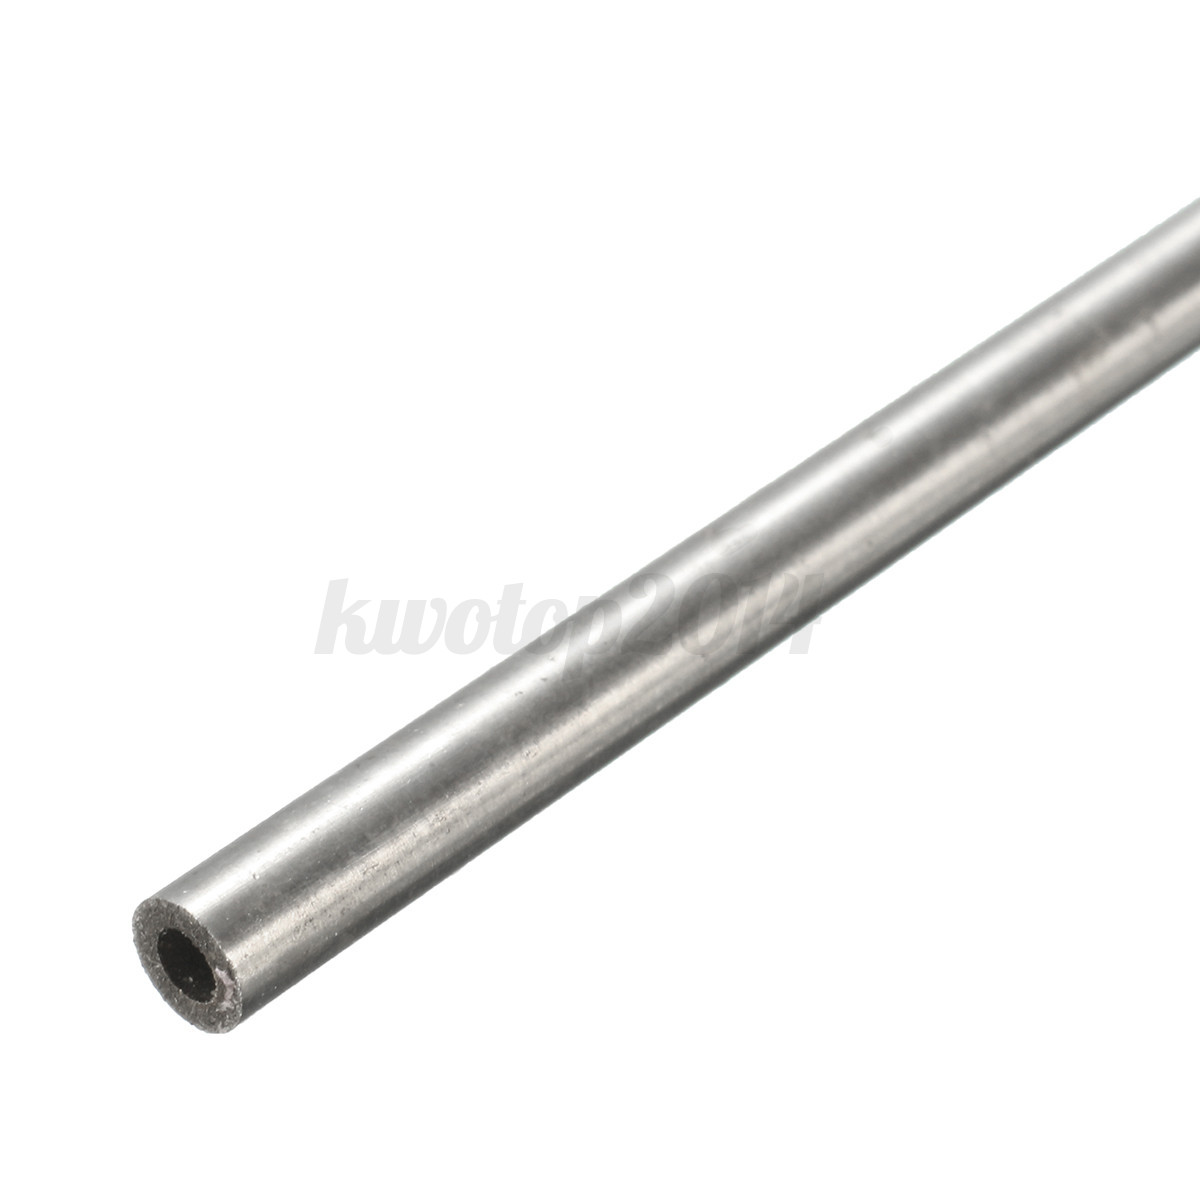 1pc 304 Stainless Steel Capillary Tube Od 4mmx2mm Id